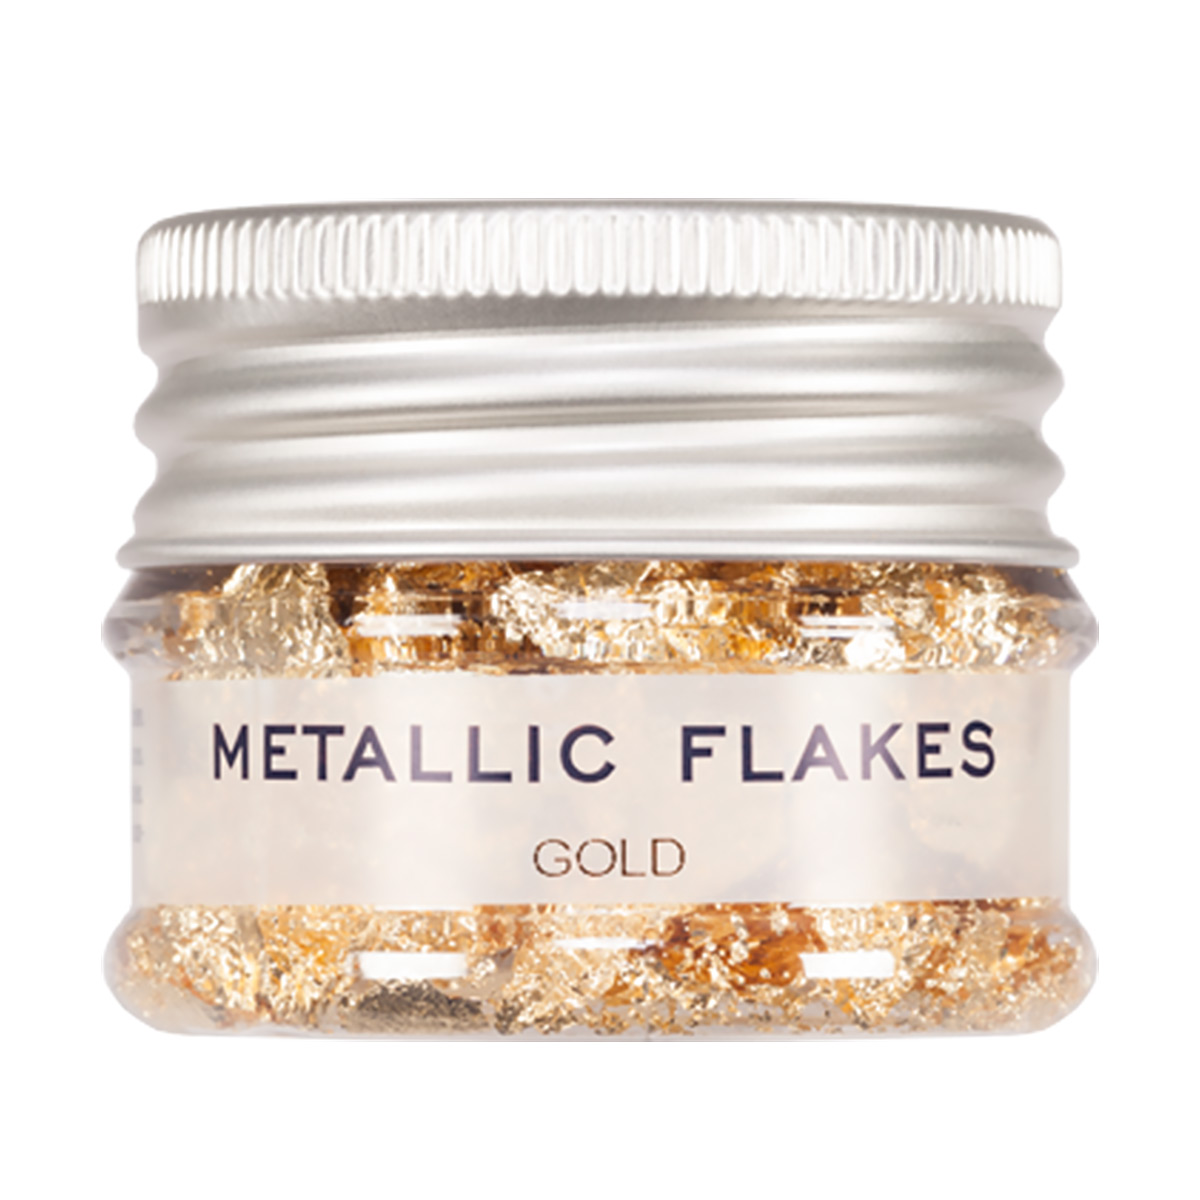 Metall flakes, guld